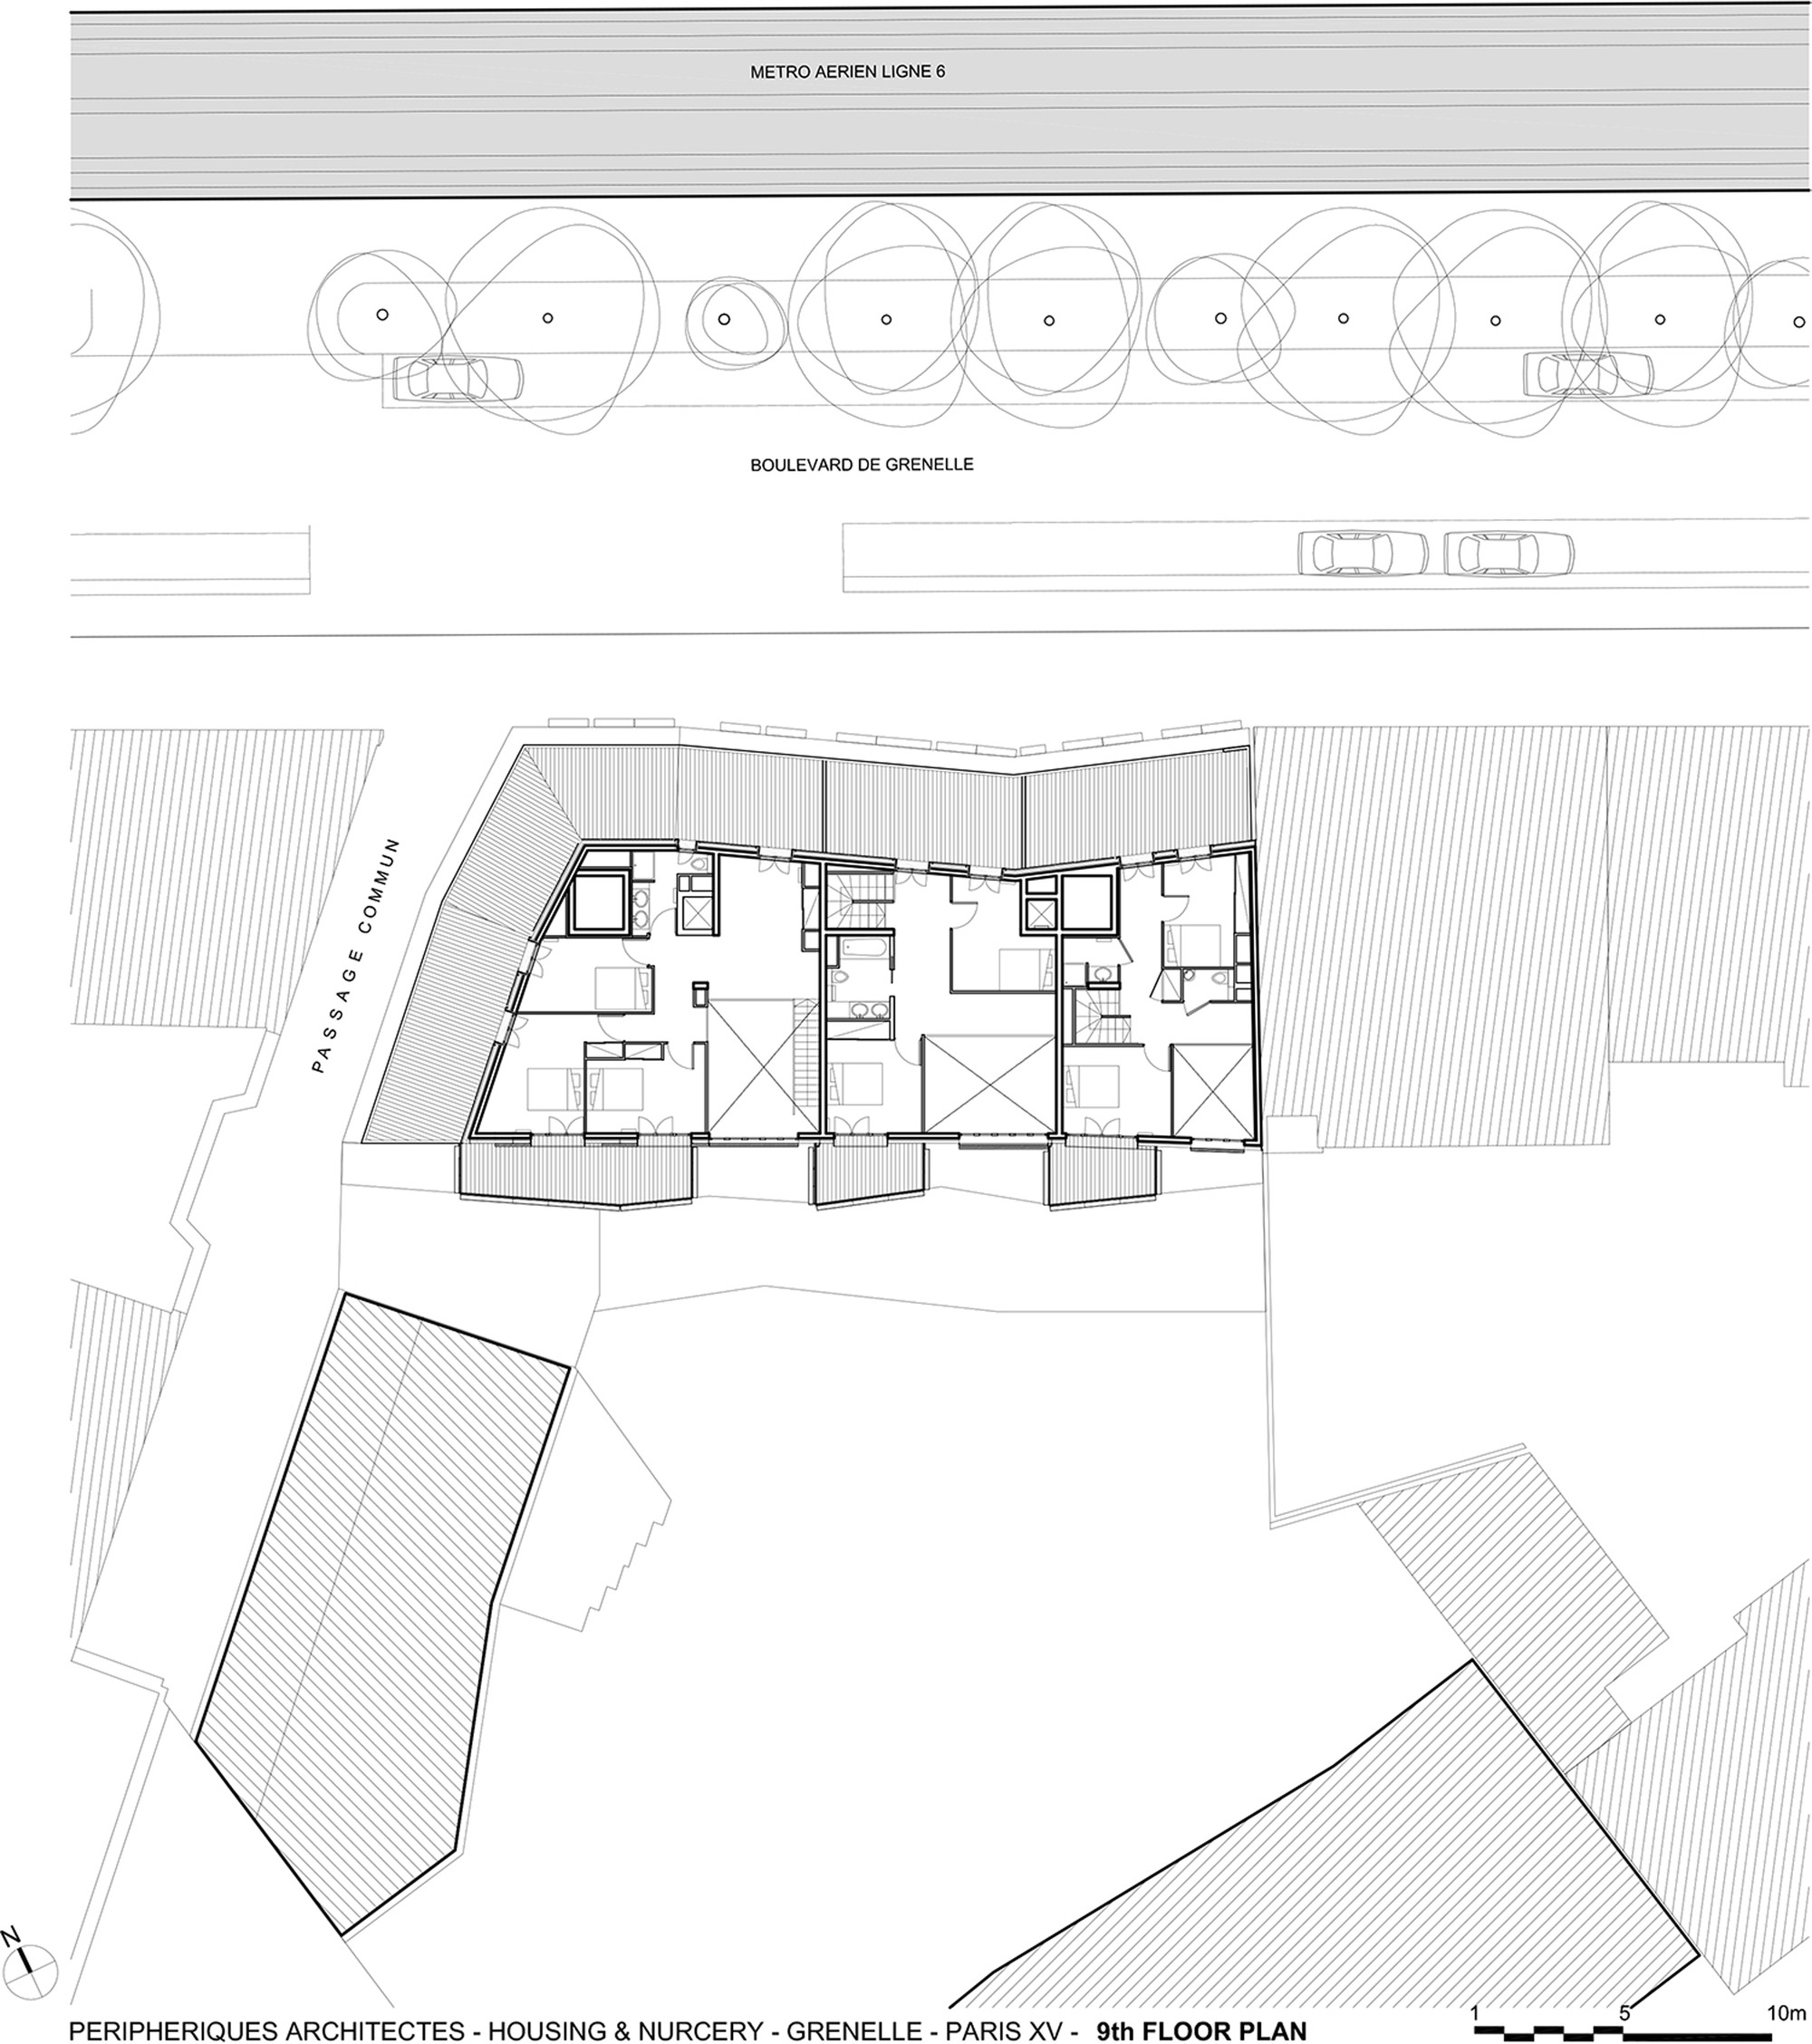 Stunning grenelle logementsth floor plan with plan for Plan architecte en ligne gratuit